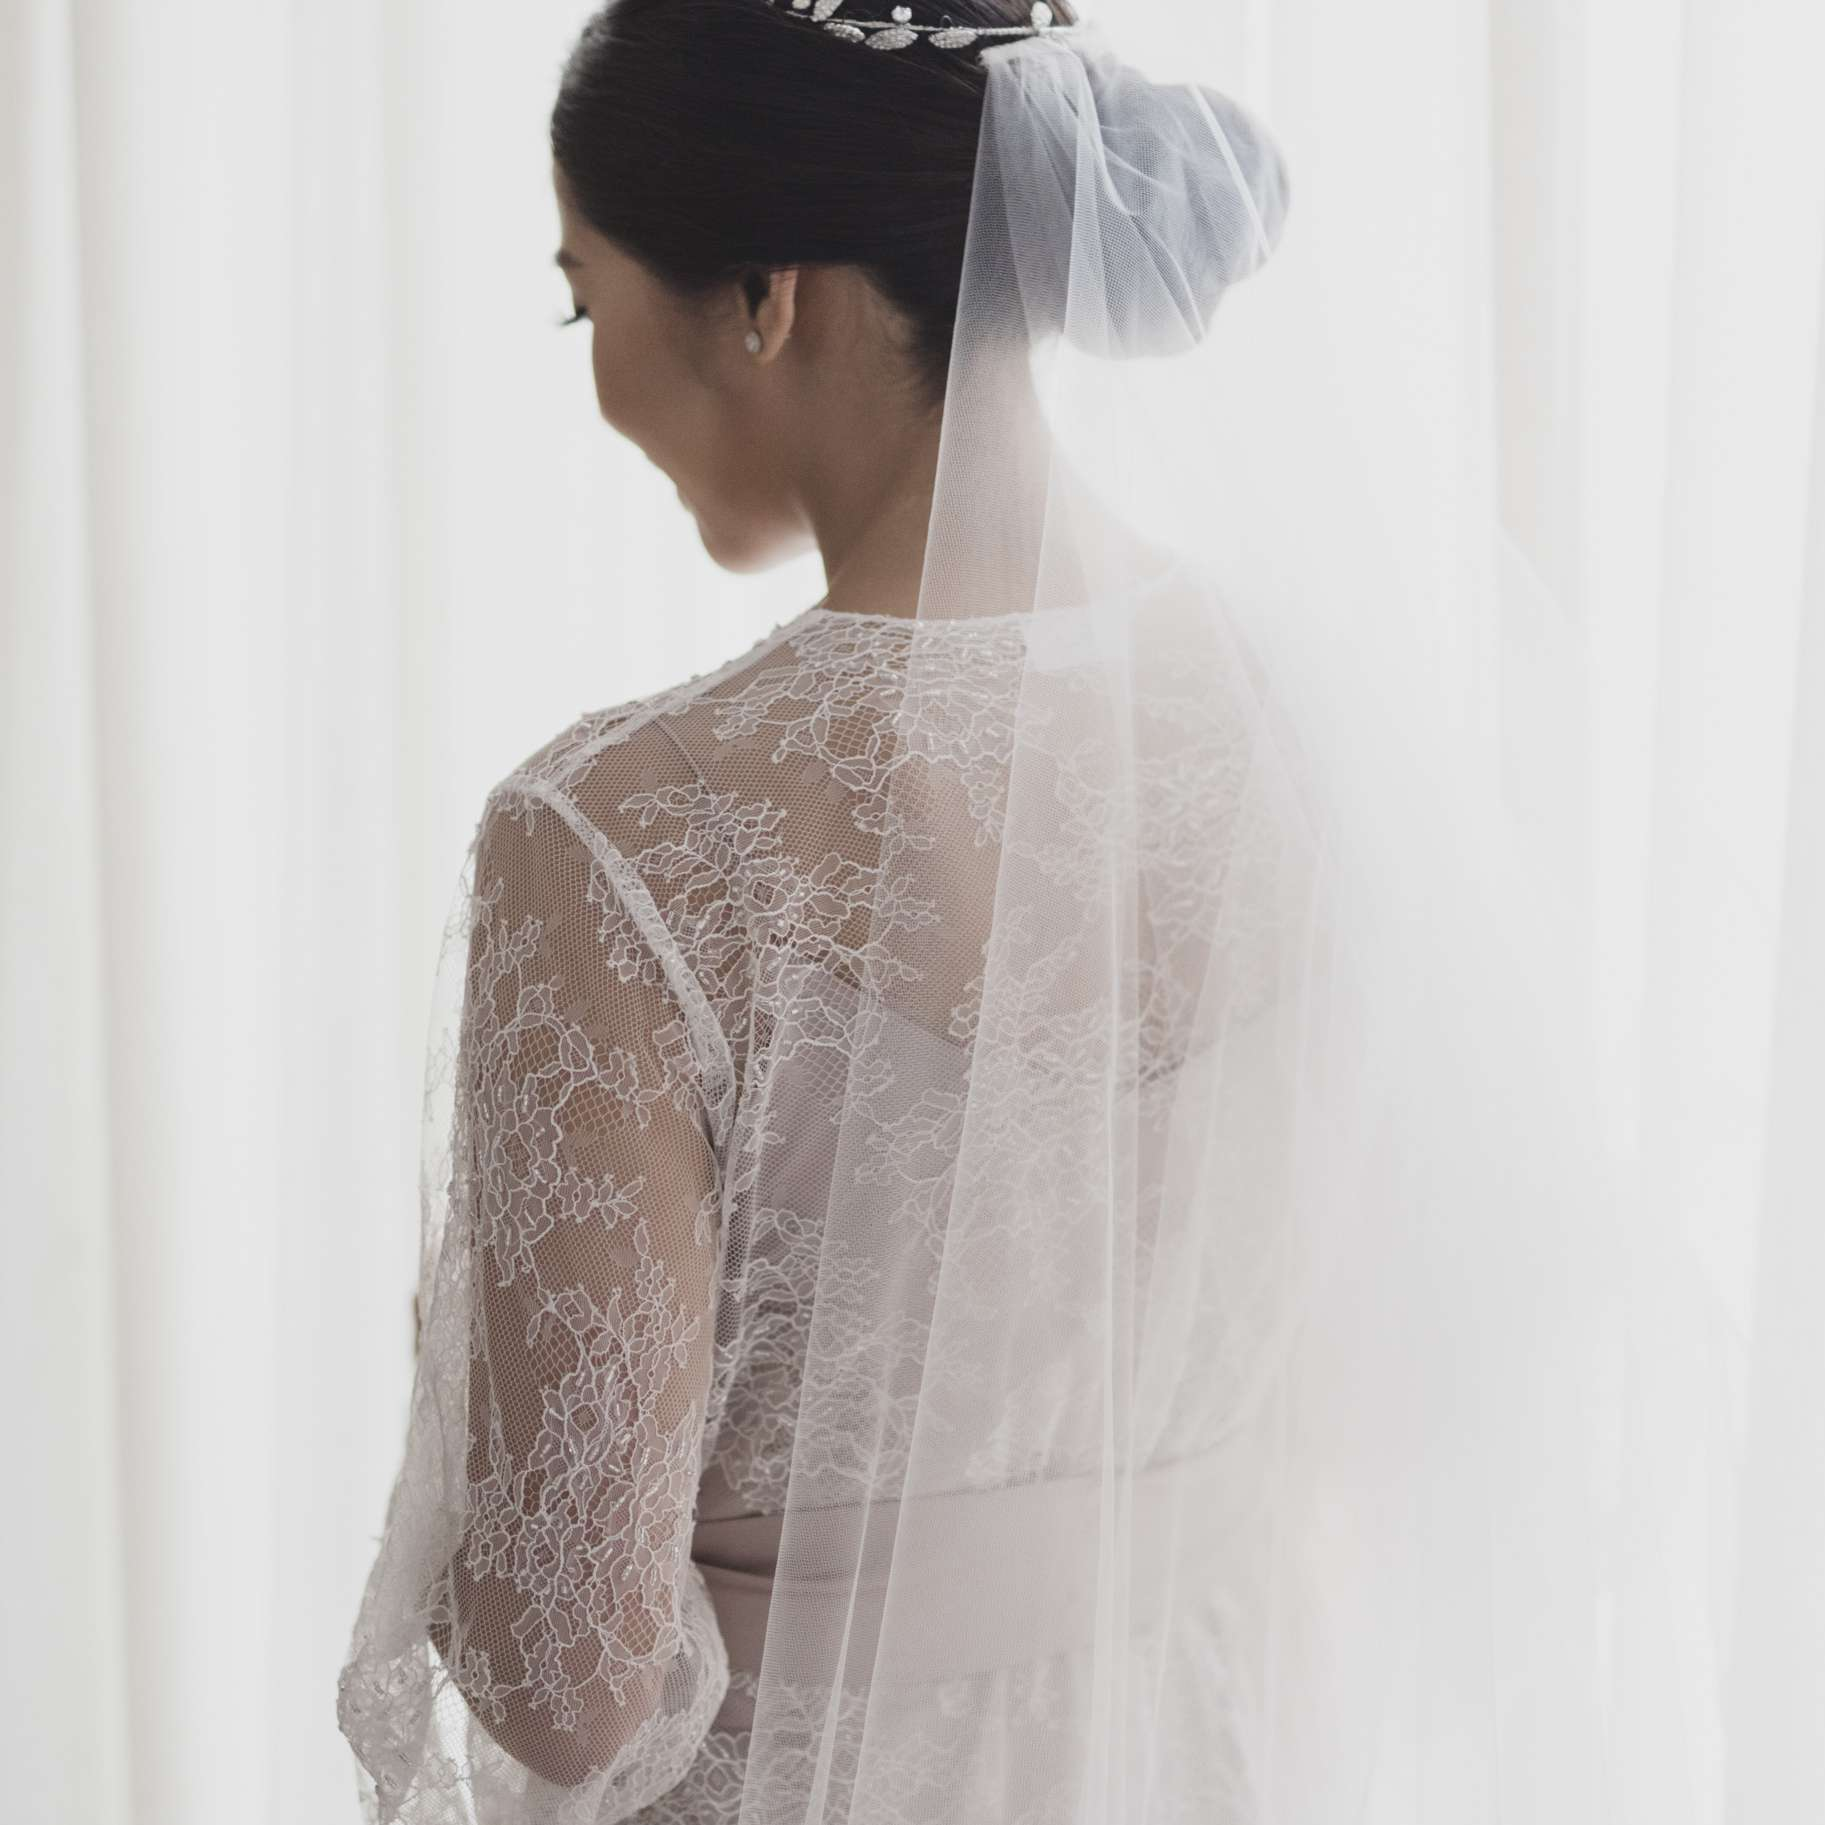 Bride in lace robe looking out window